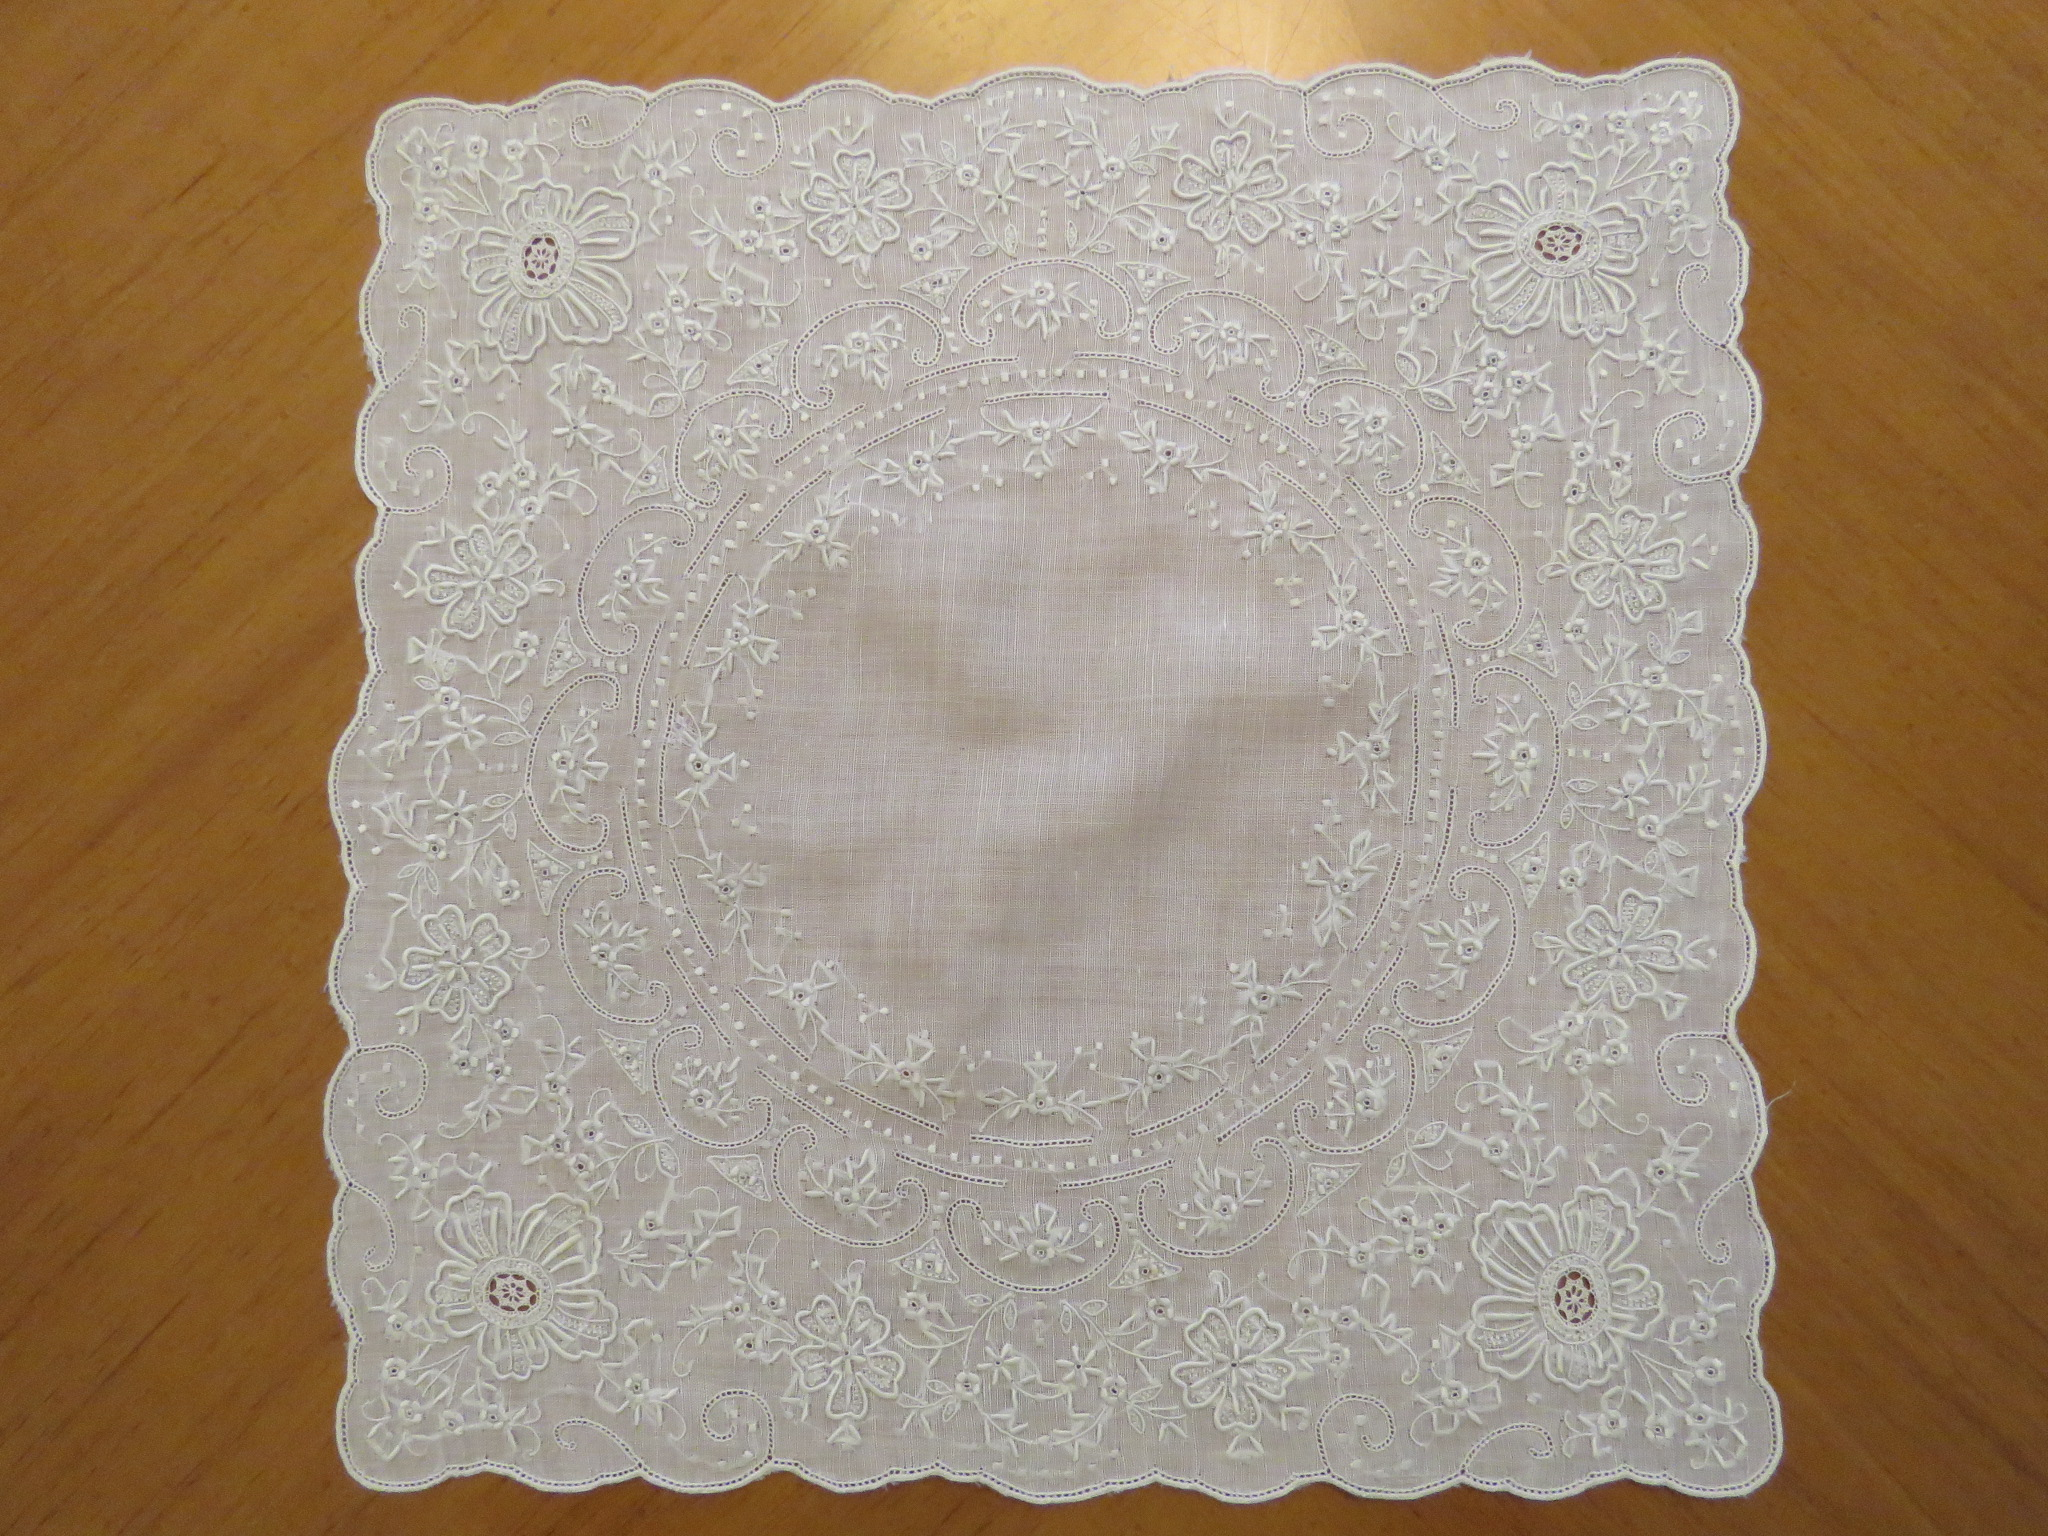 Vintage Ladies Wedding Linen Handkerchief Hand Embroidered Flowers Embroidery (LAC-262)